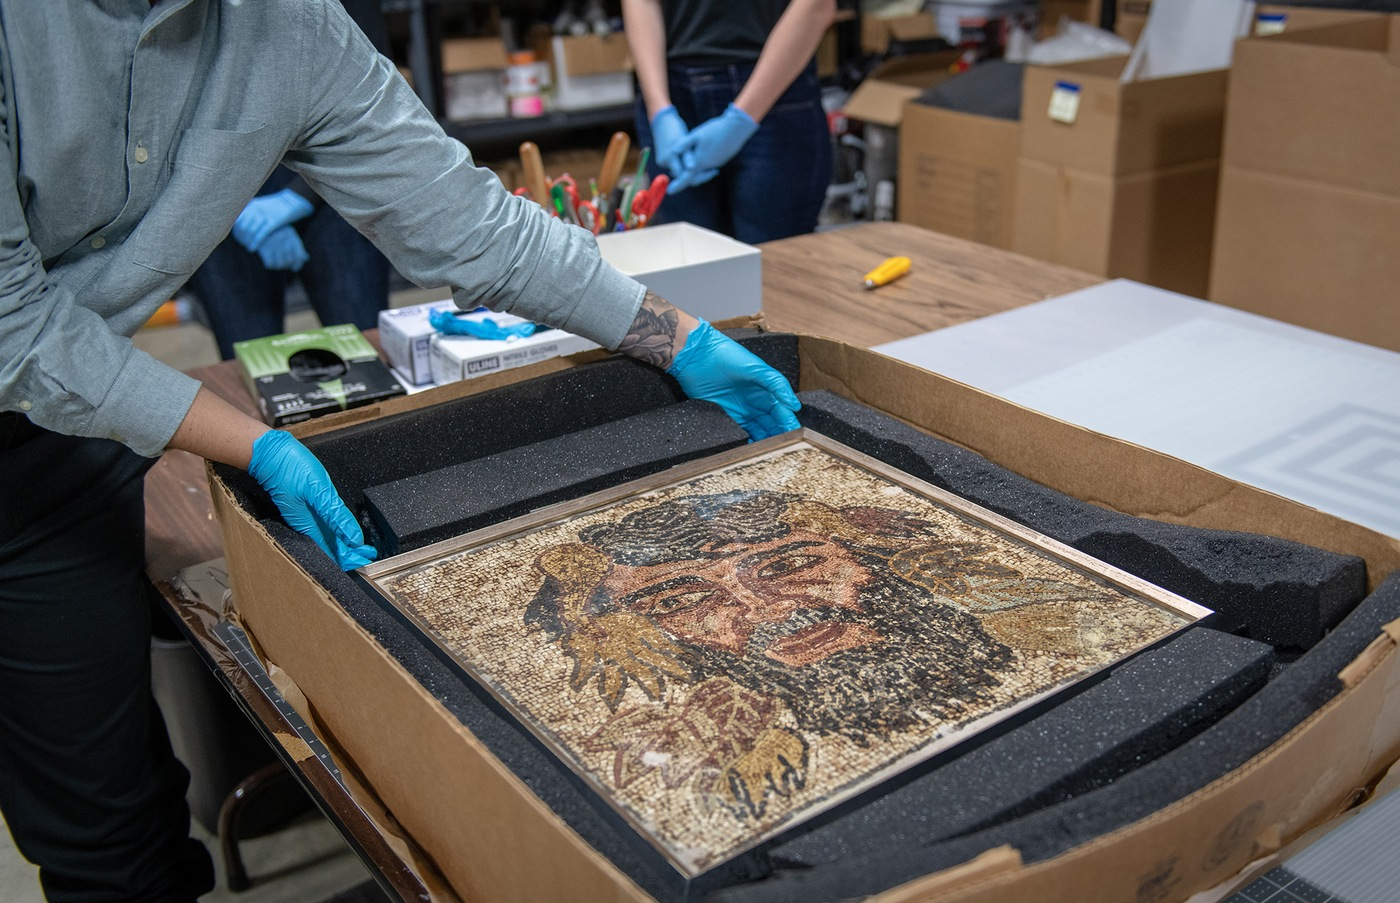 An intricate Italian mosaic was among the thousands of items recovered by the FBI at Don Miller's home in 2014.